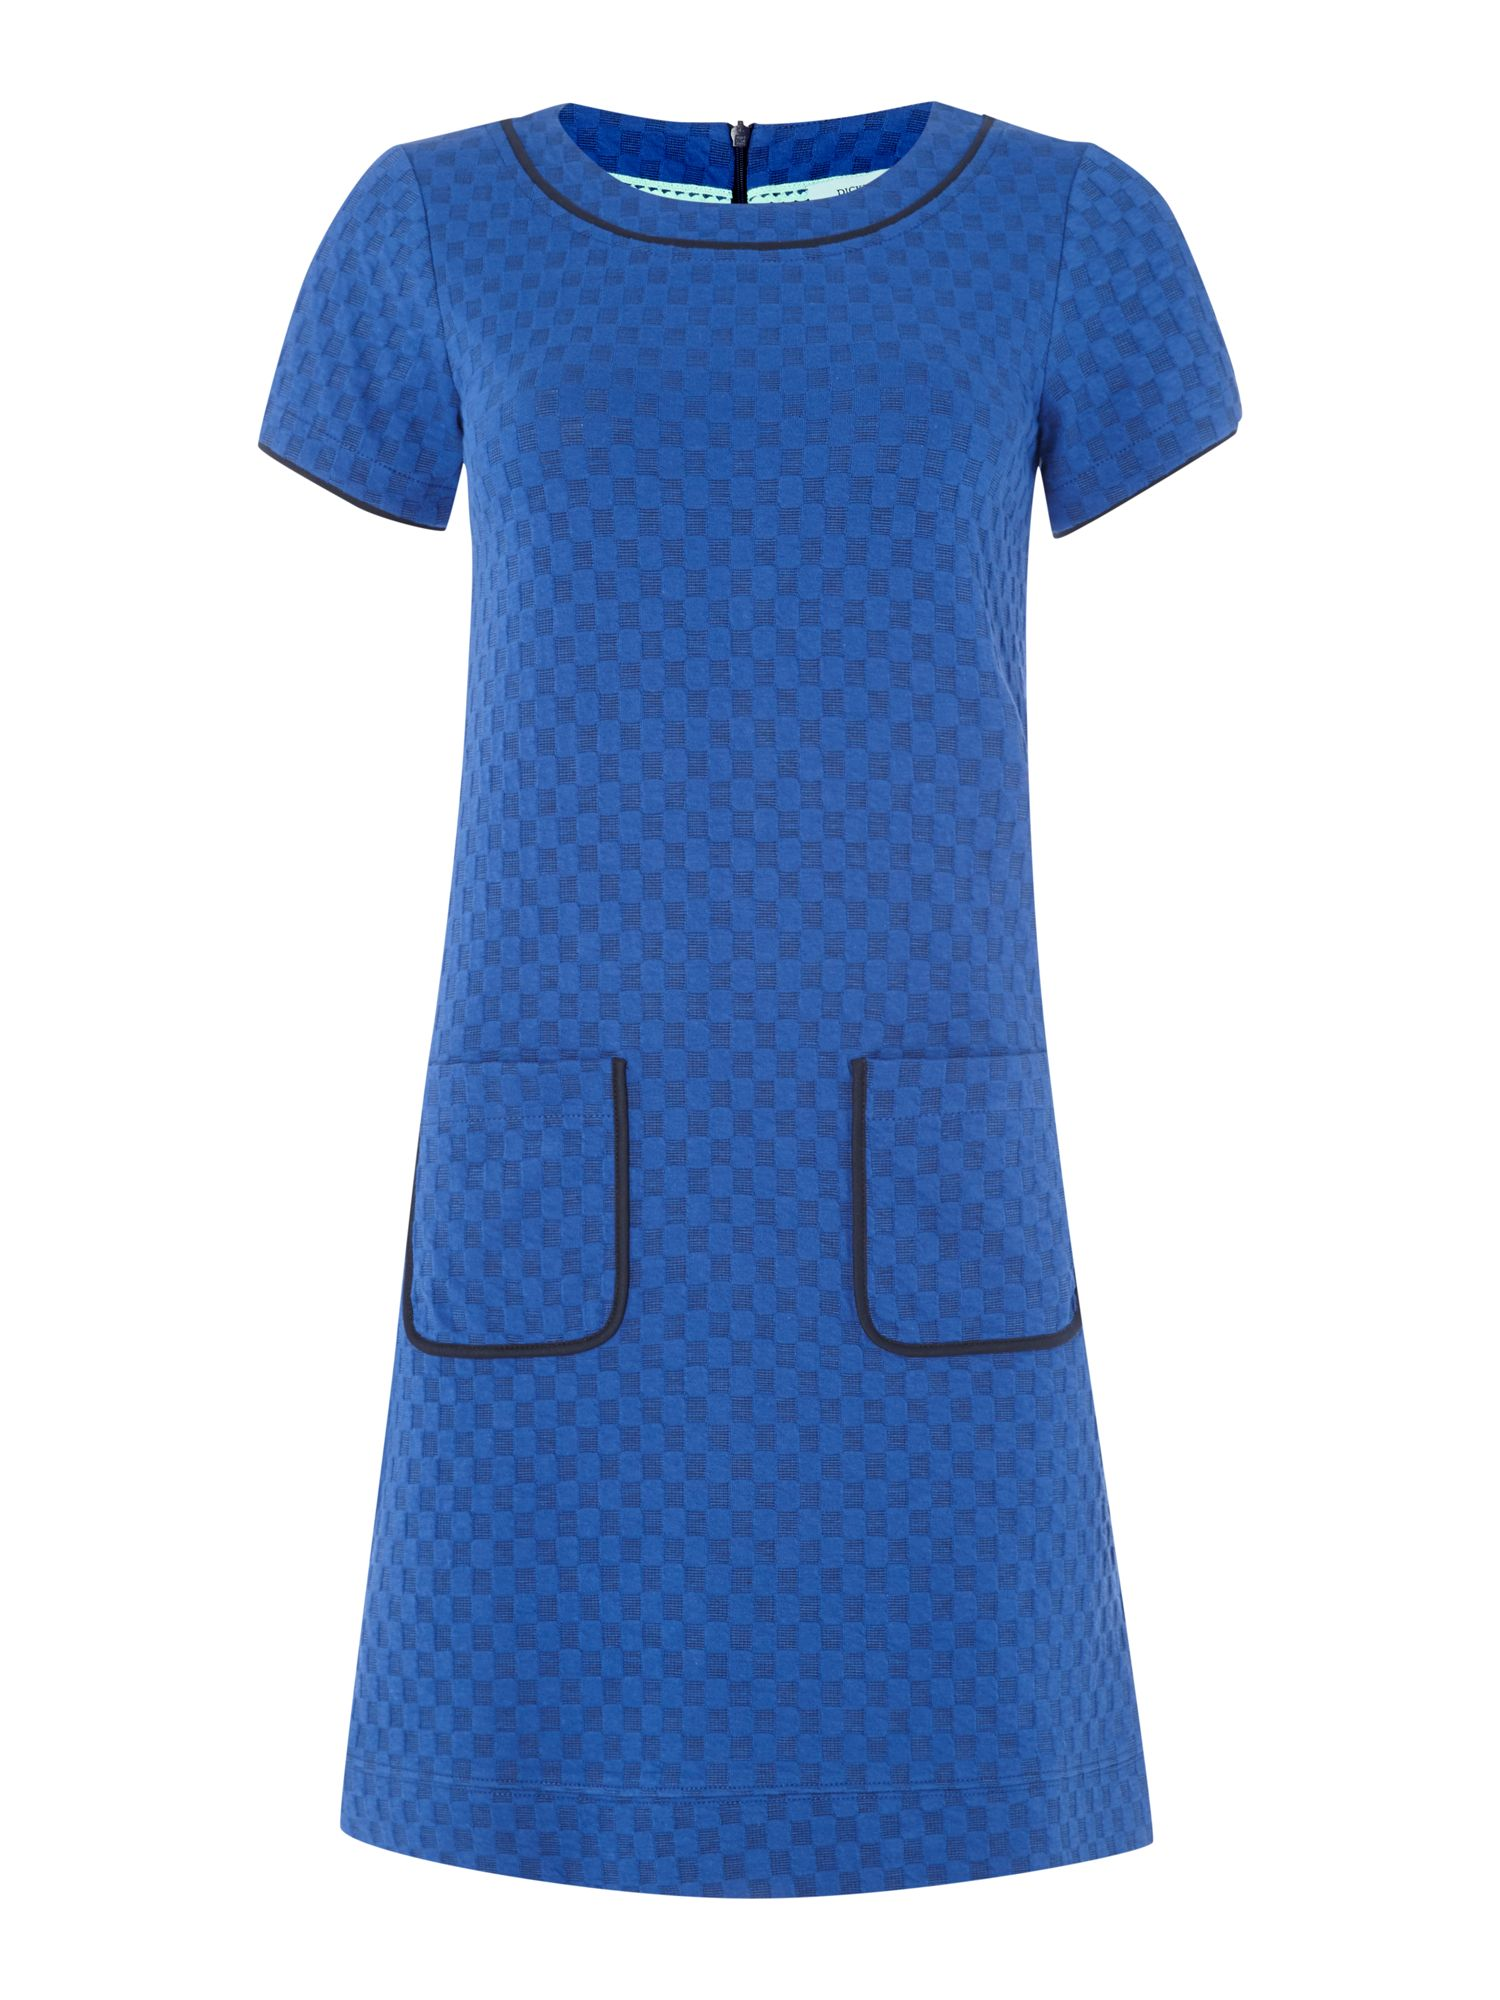 Dress with square jacquard